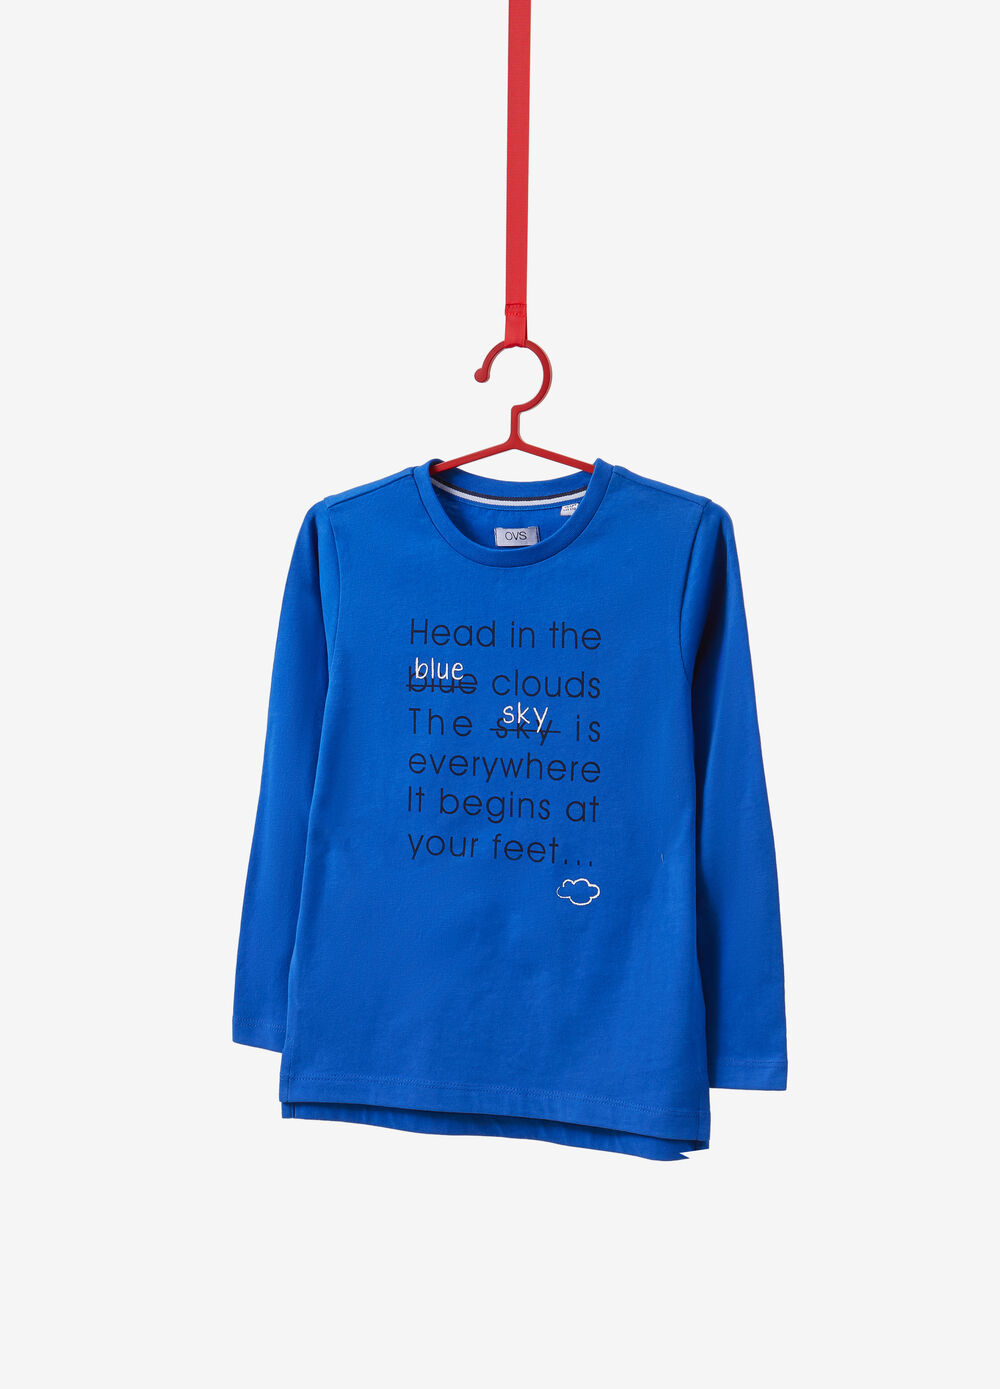 100% organic cotton T-shirt with lettering